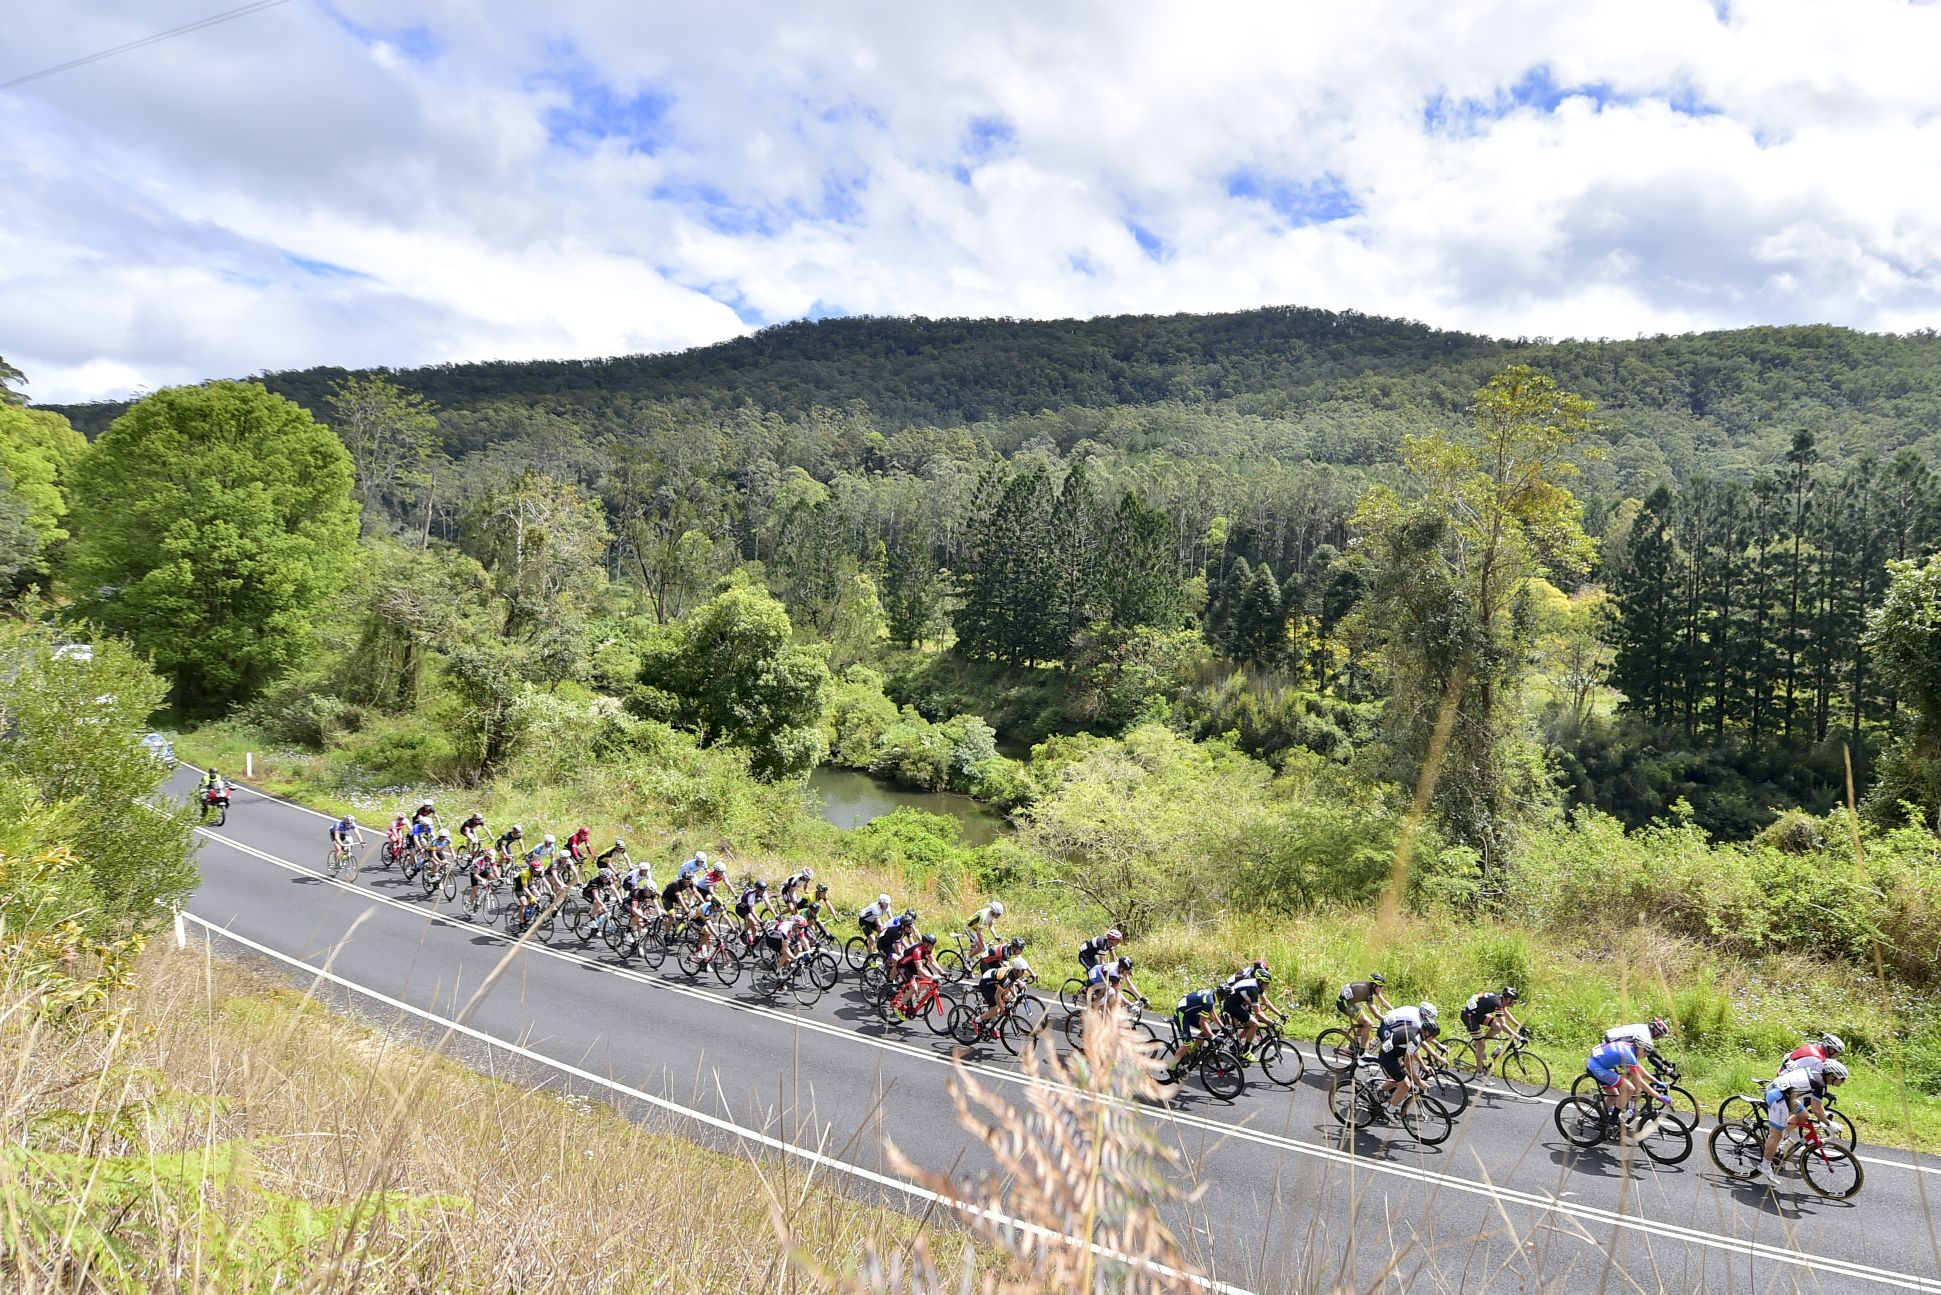 During 2015 National Masters Championships RR at Tweed Valley Road, Potsville, NSW, Australia on 26/09/2015. Image rights: Niels Juel, Veloshotz, \